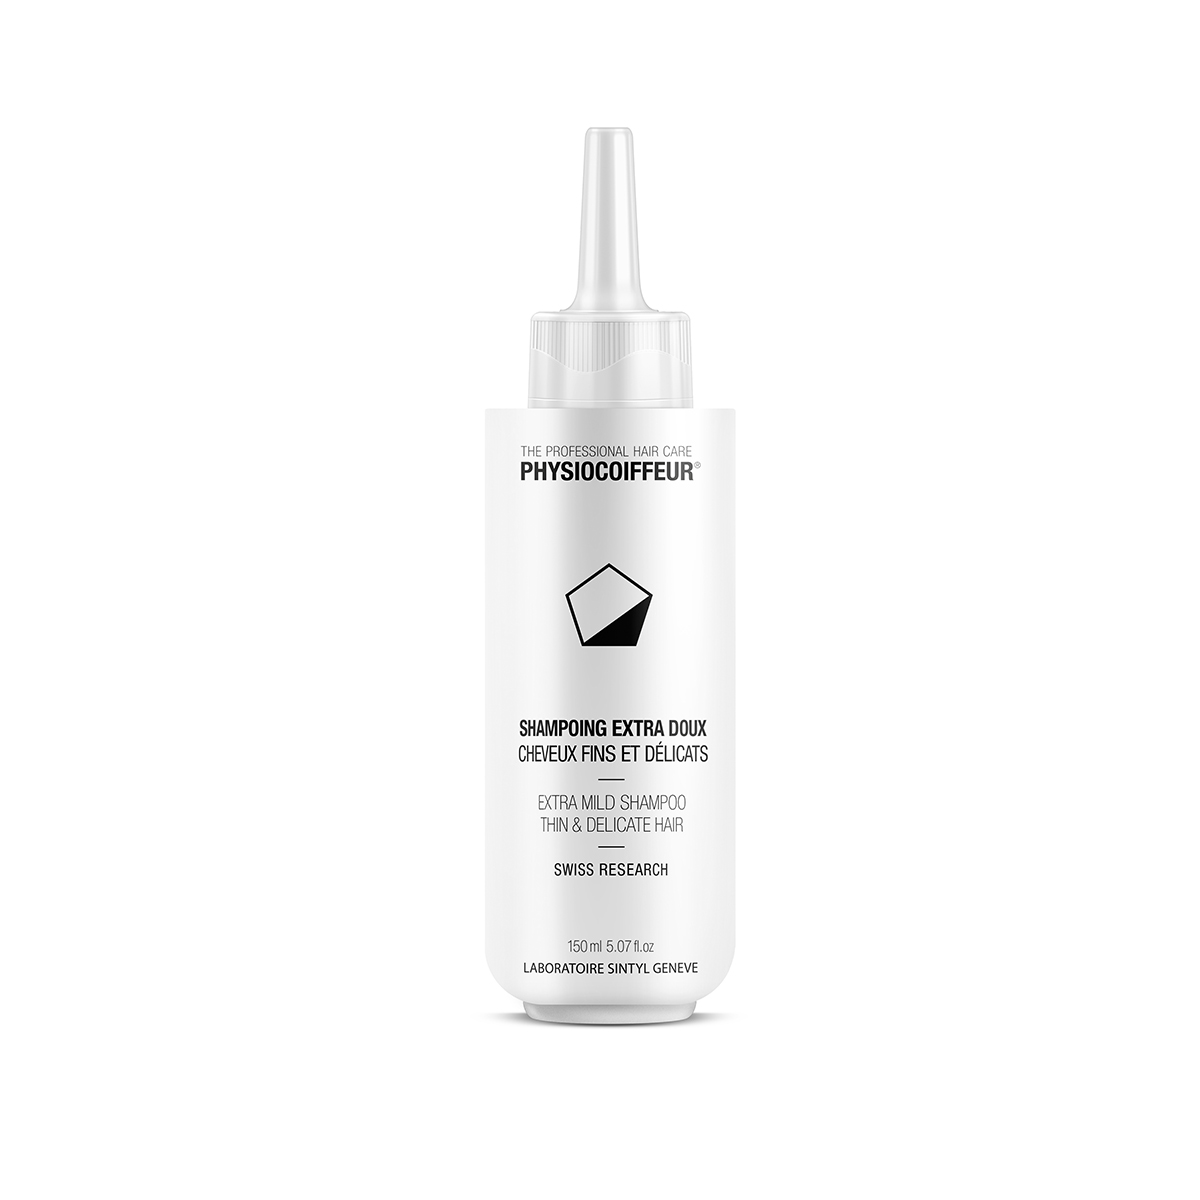 shampoing extra doux cheveux fins delicats physiocoiffeur